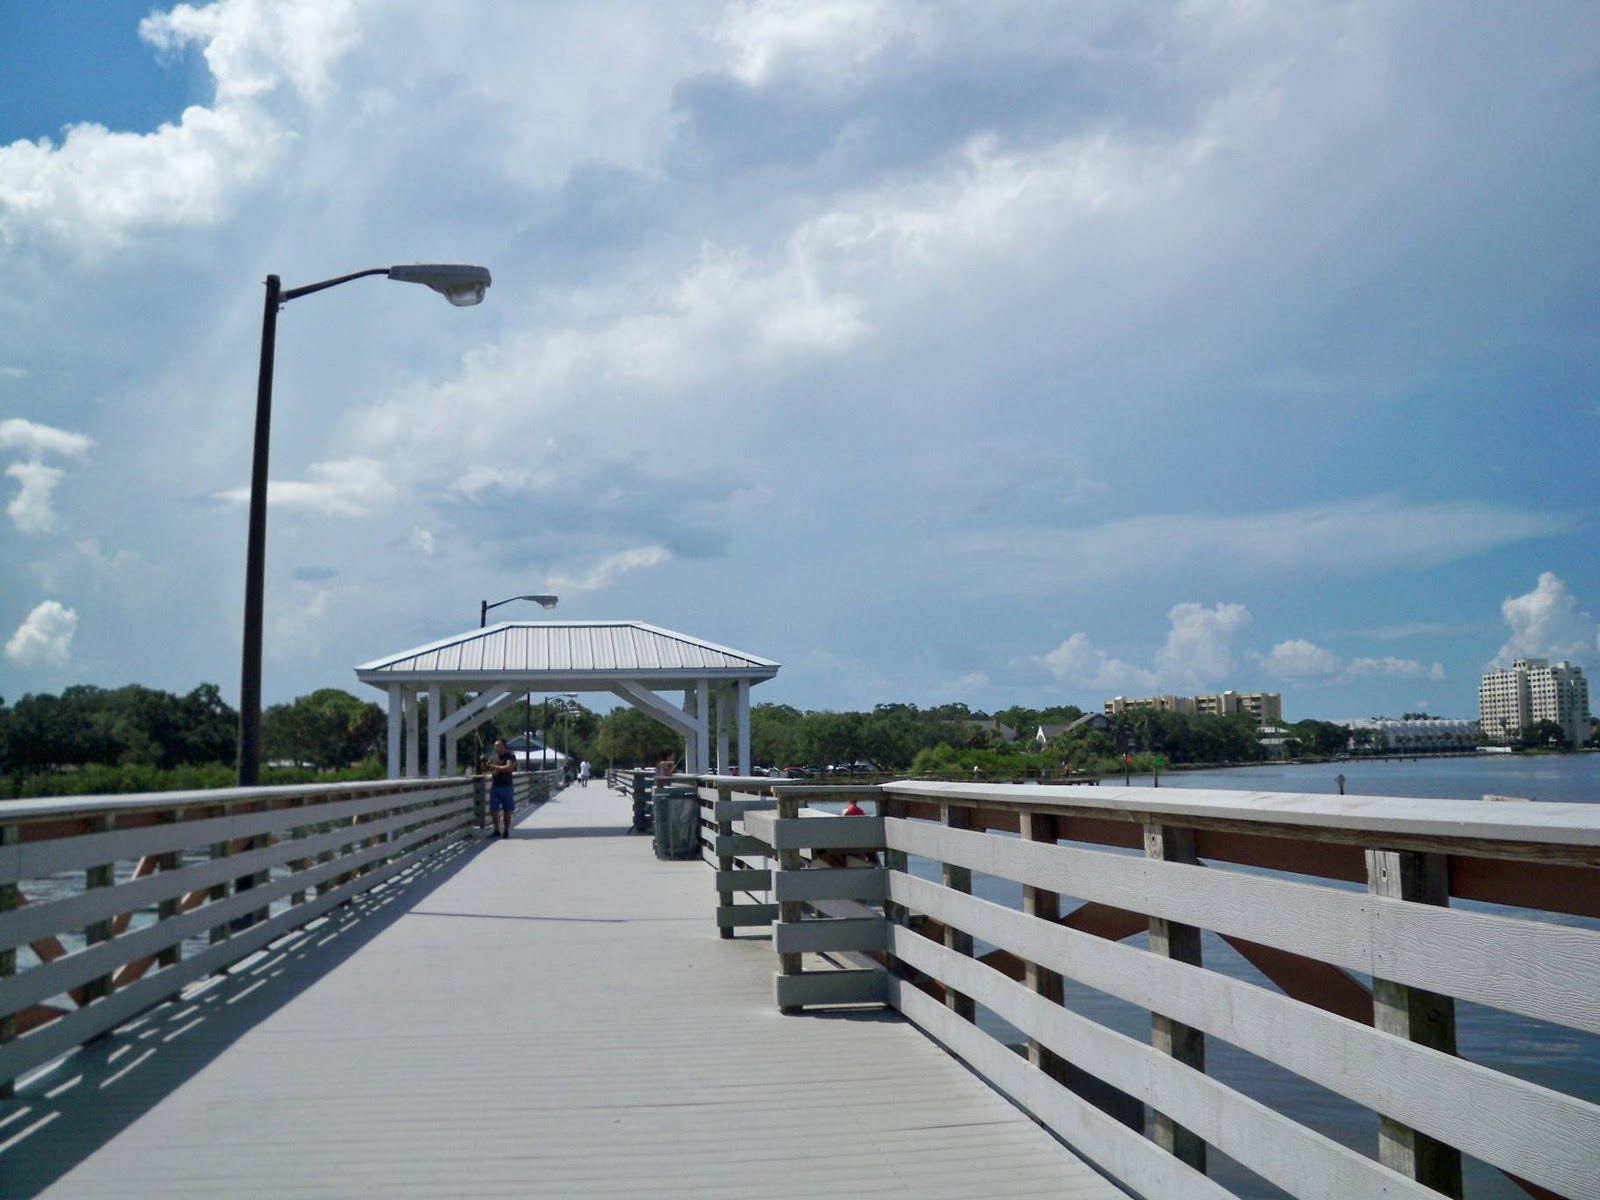 My florida paradise ballast point park tampa florida for Tampa fishing piers